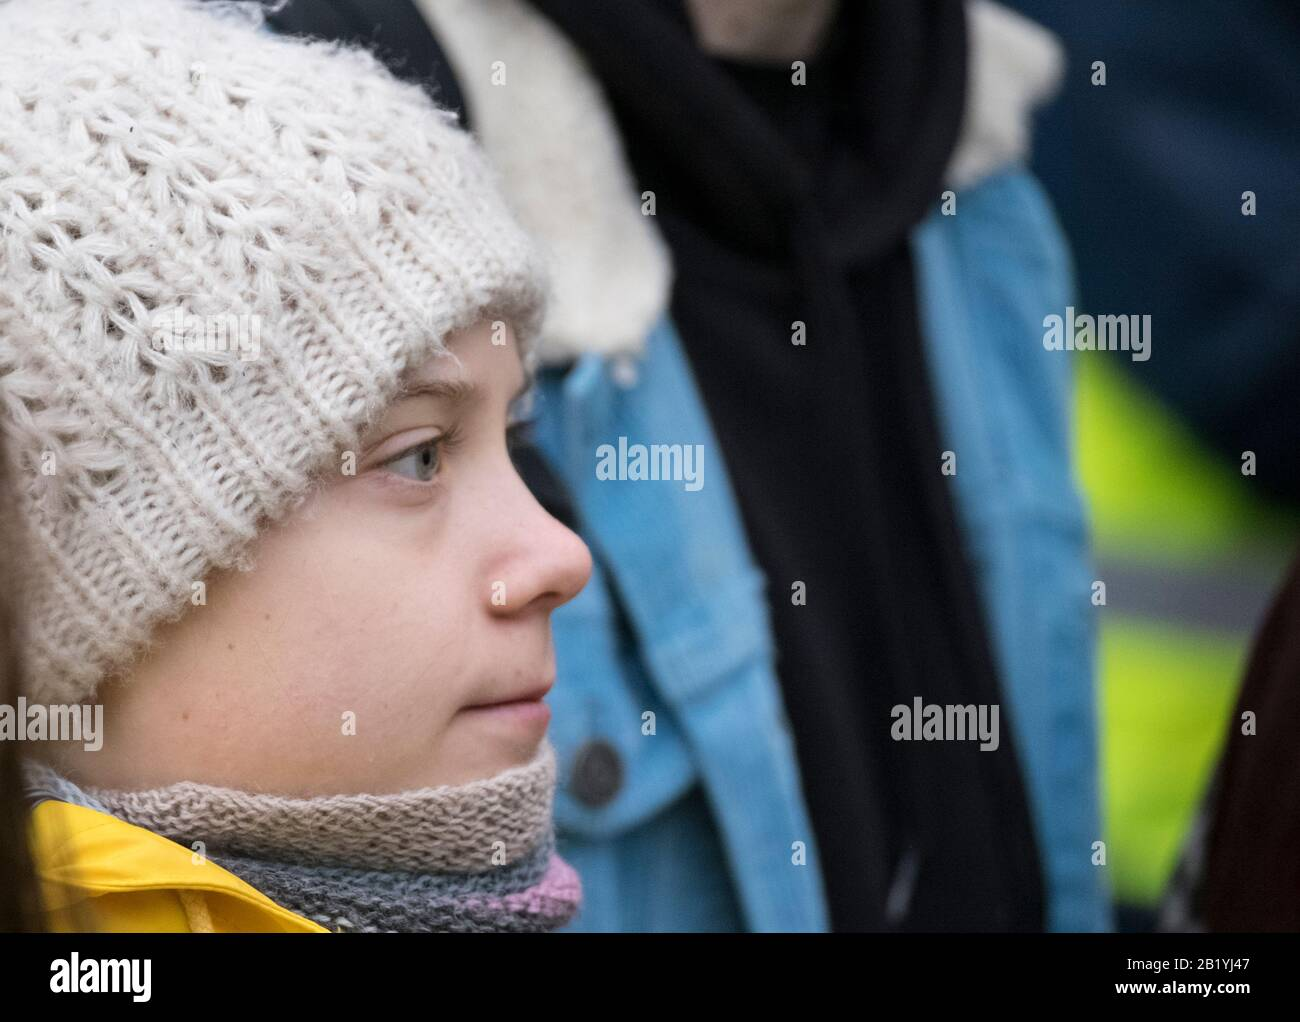 bristol-uk-28th-feb-2020-greta-thunberg-the-swedish-environmental-activist-visits-bristol-bristol-youth-strike-4-climate-continue-the-monthly-strike-they-have-been-making-since-february-2019-activists-are-calling-on-people-of-all-ages-to-take-raise-awareness-in-climate-change-and-reduce-fossil-fuel-usage-the-groups-congregated-on-college-green-before-marching-through-the-city-credit-mr-standfastalamy-live-news-2B1YJ47.jpg